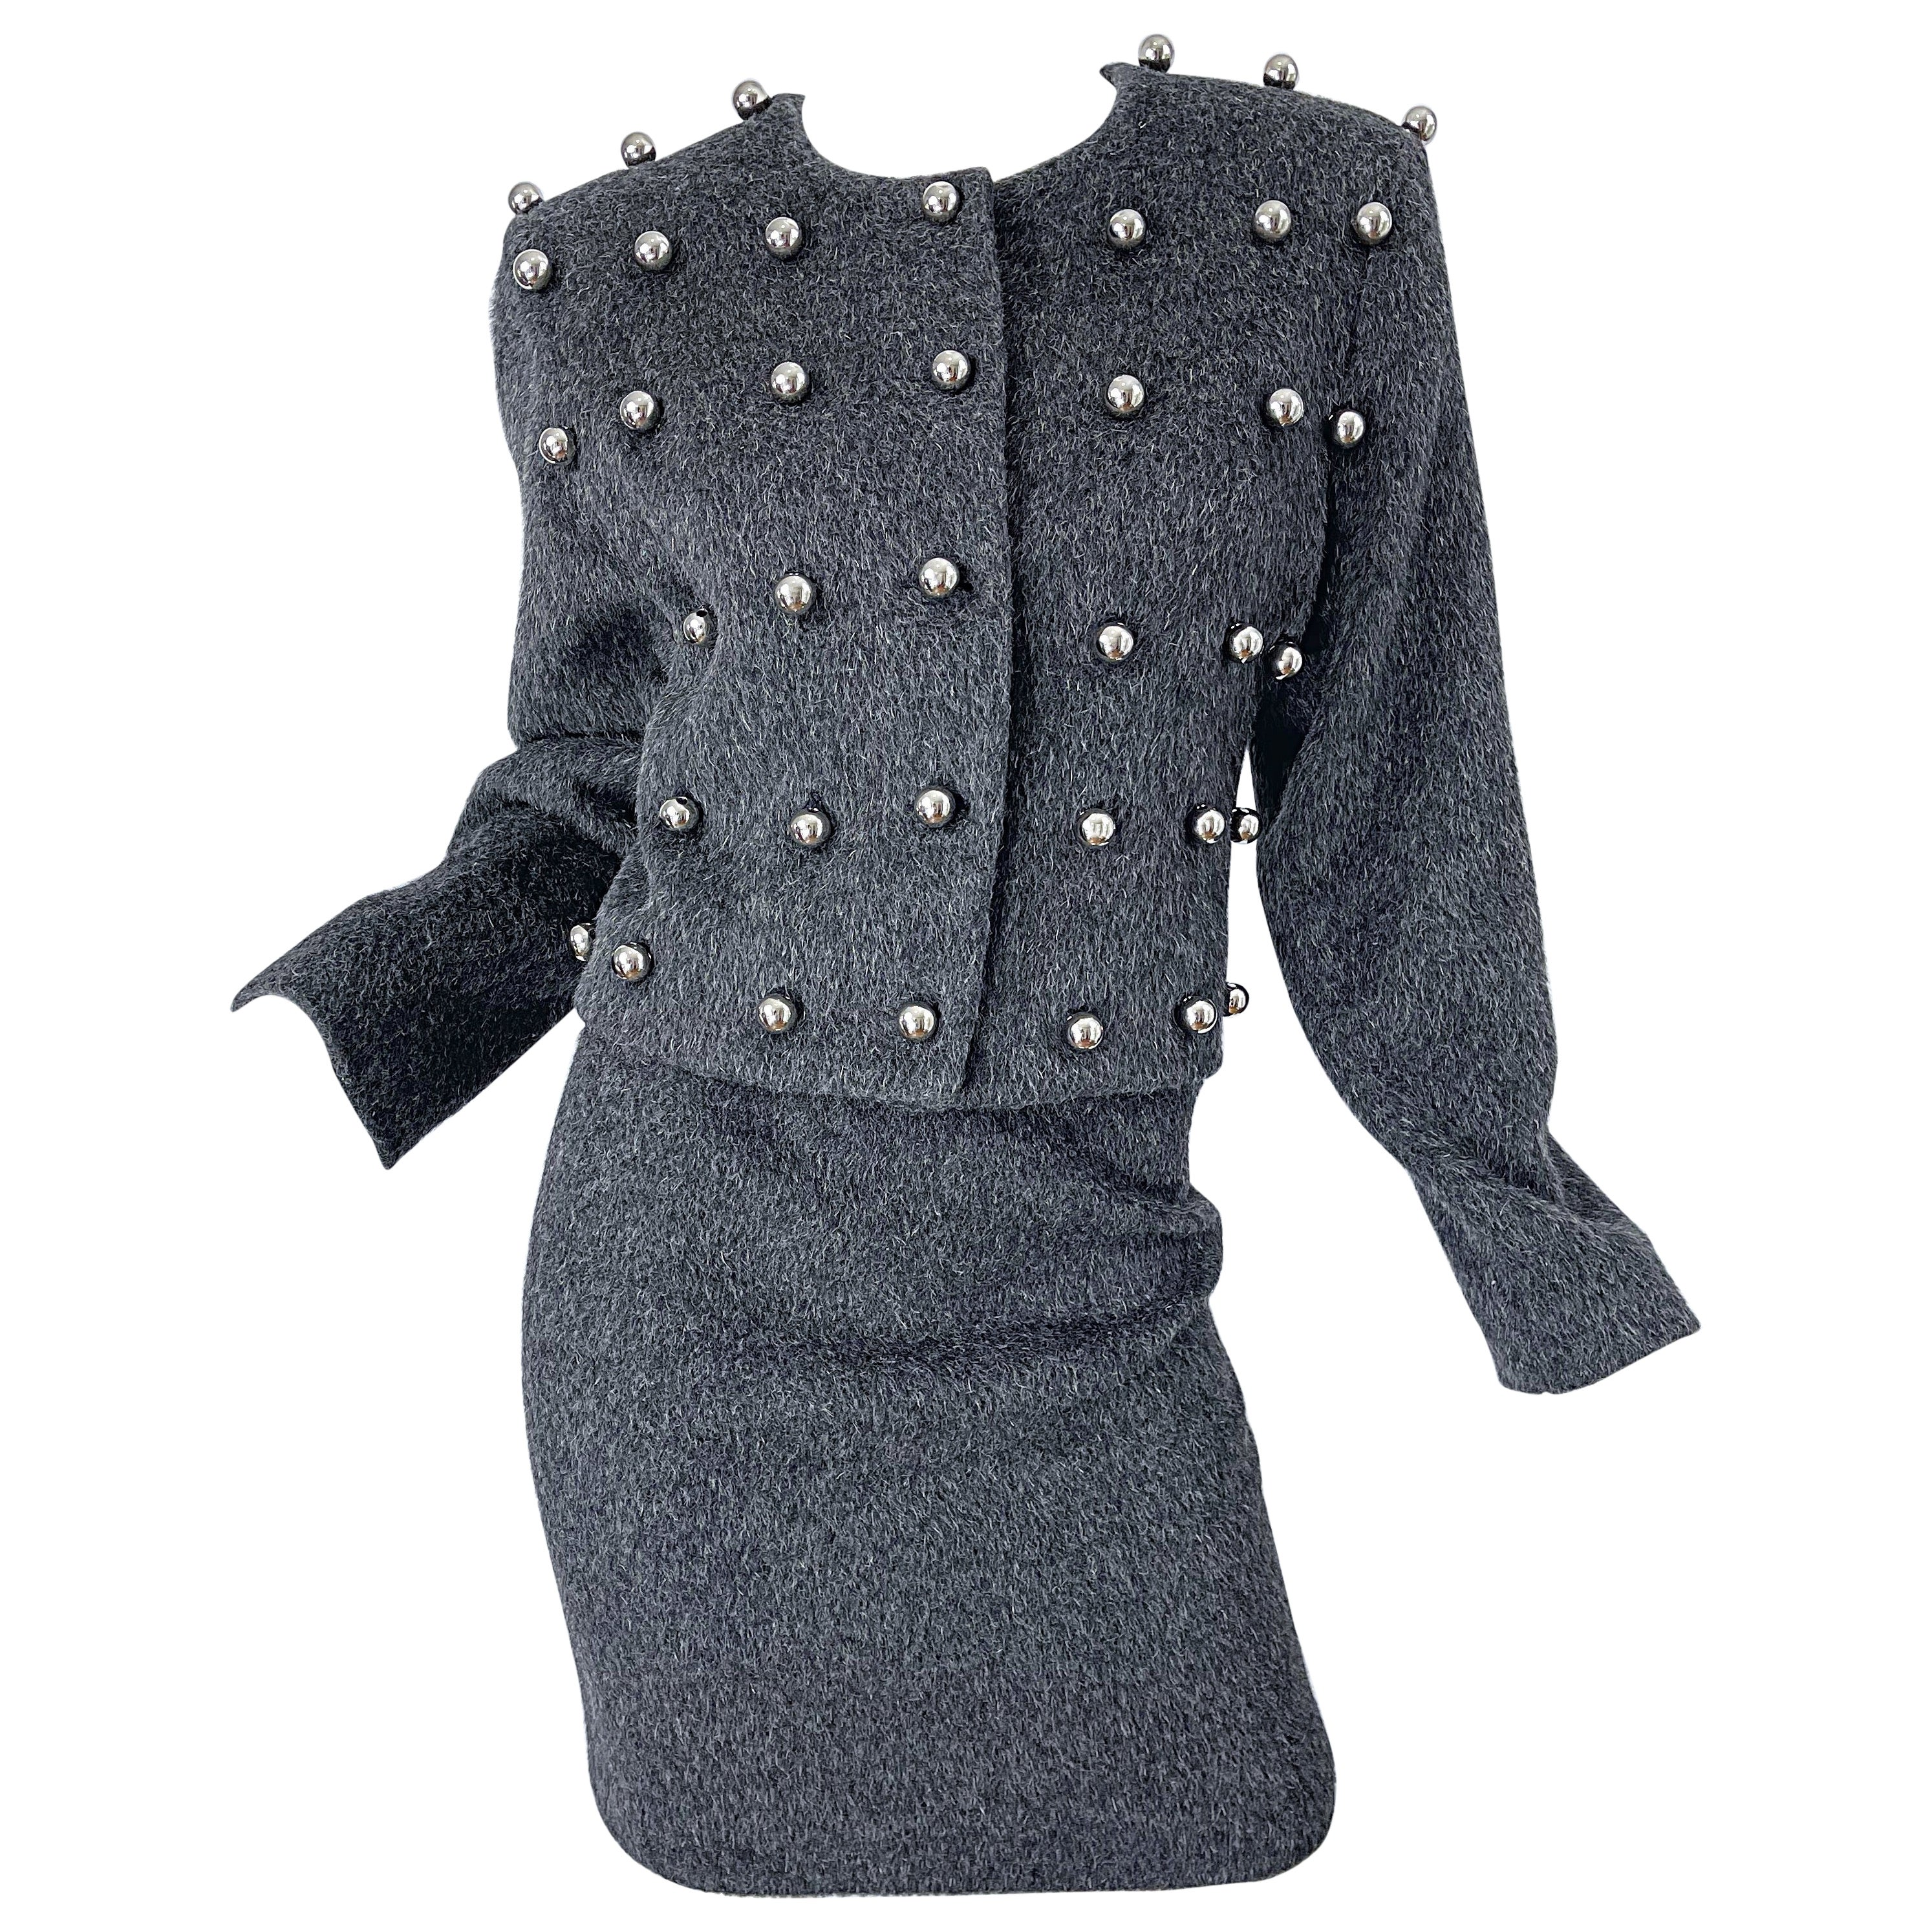 Patrick Kelly 1980s Charcoal Grey Silver Studded Balls Vintage 80s Skirt Suit